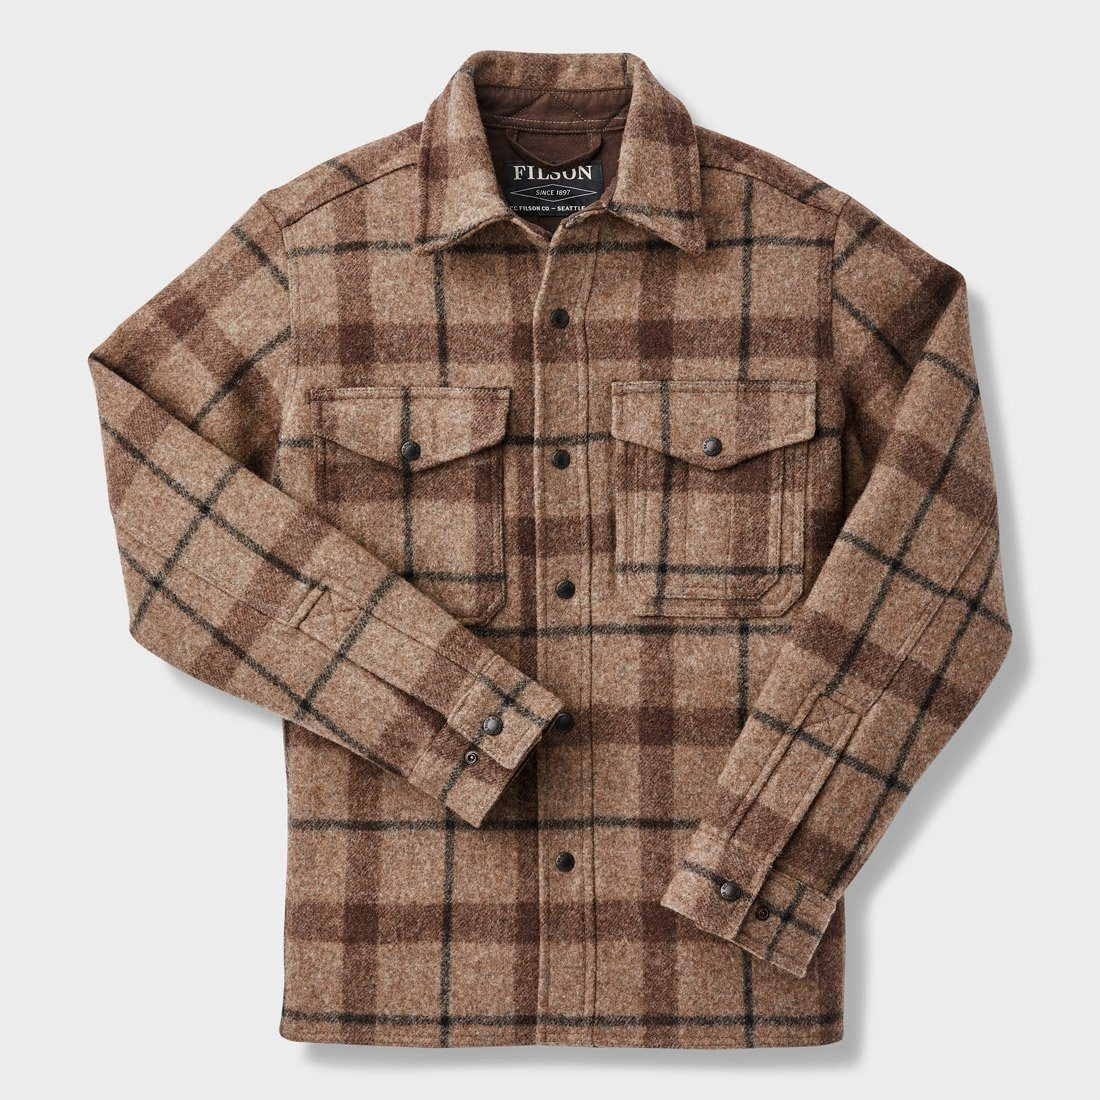 Filson Mackinaw Jac-Shirt Taupe/ Brown/ Black Plaid